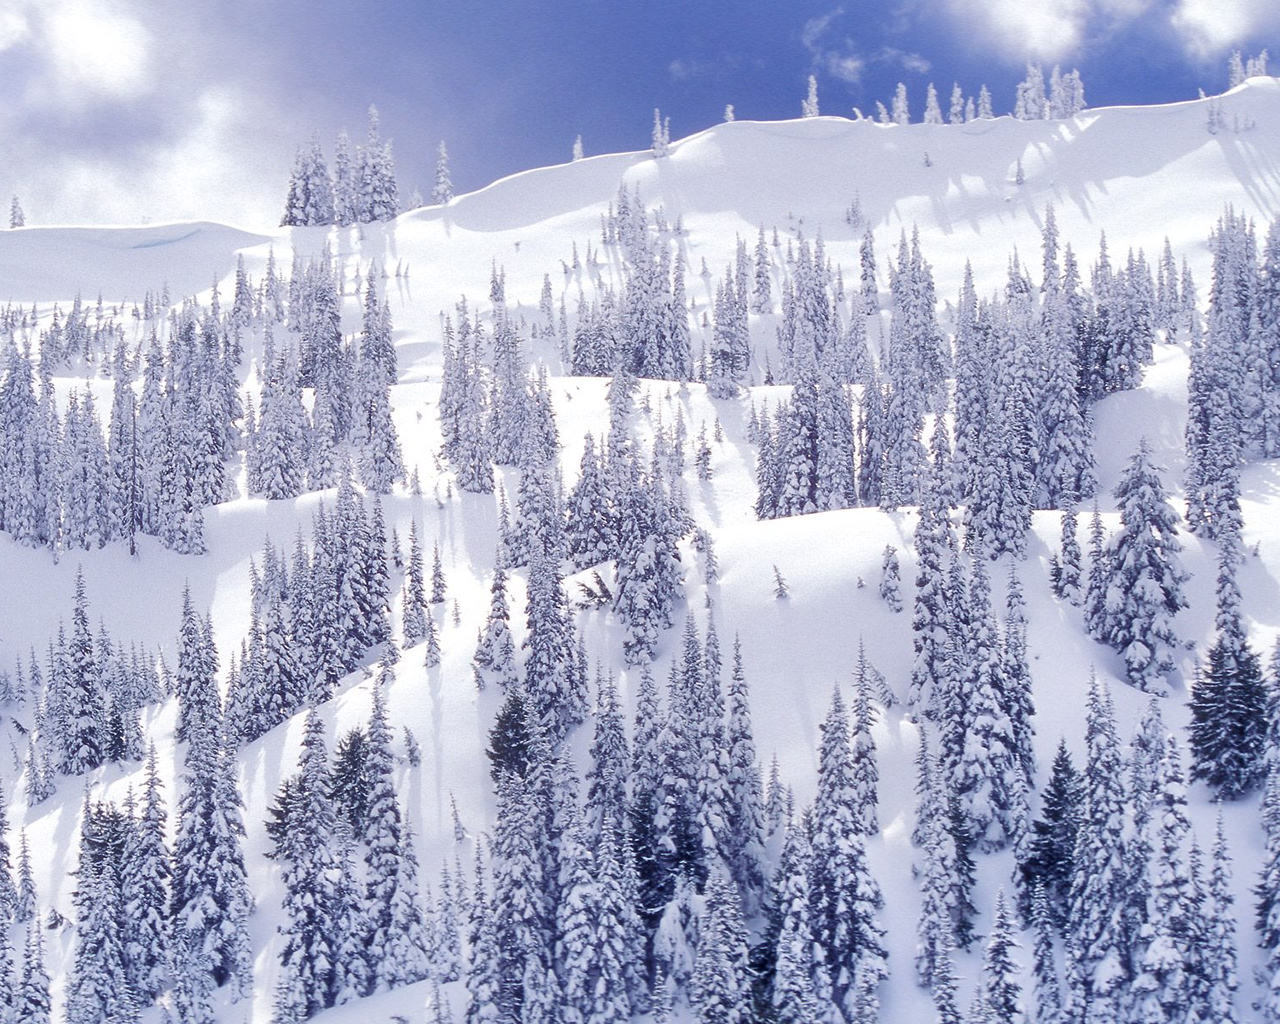 awesome nature wallpapers winter - photo #43